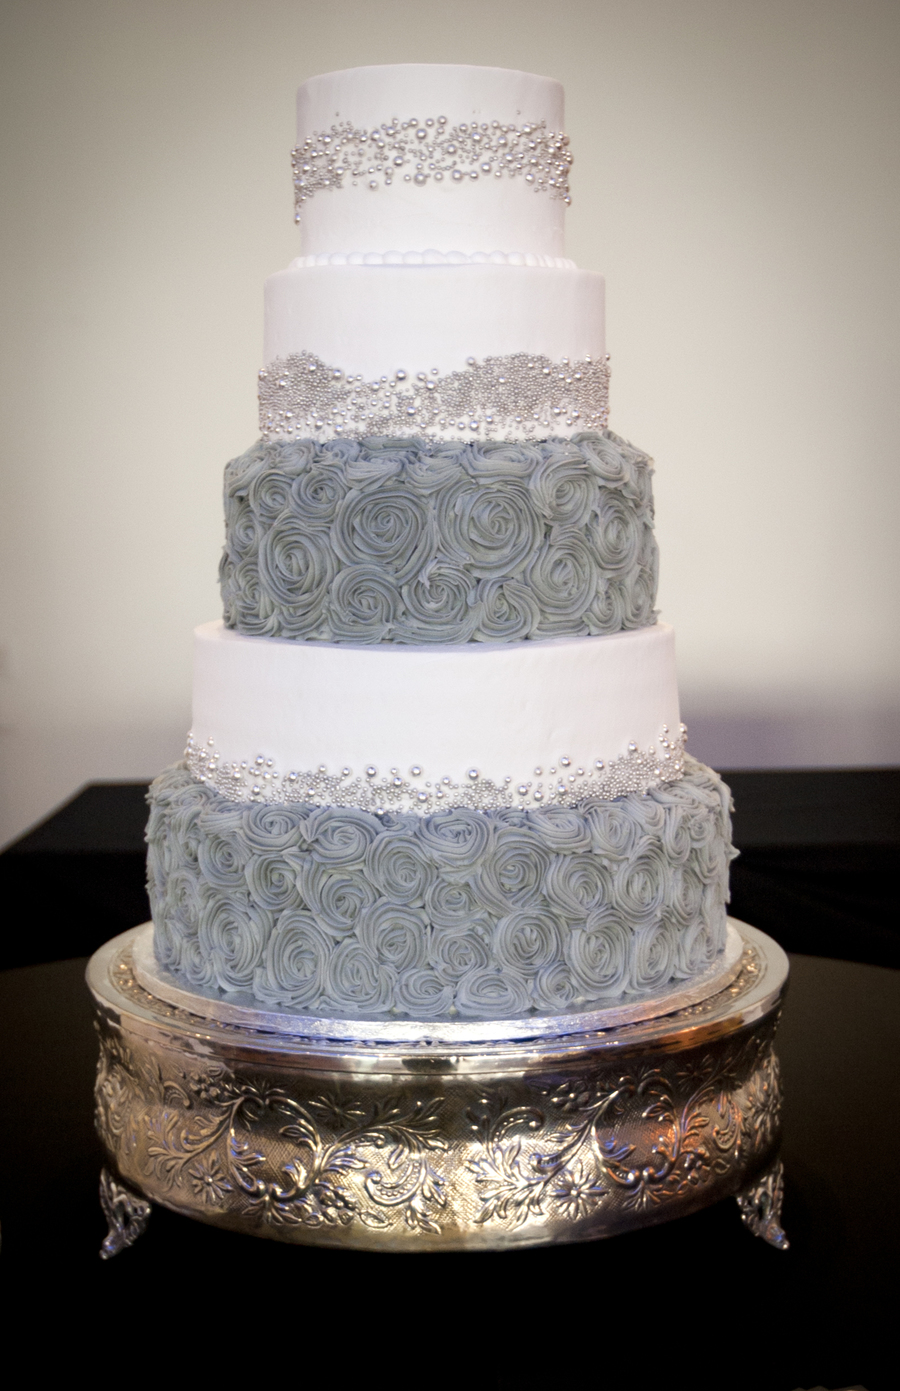 3 Tier Wedding Cake Covered In Fondant With Gumpaste Lace And